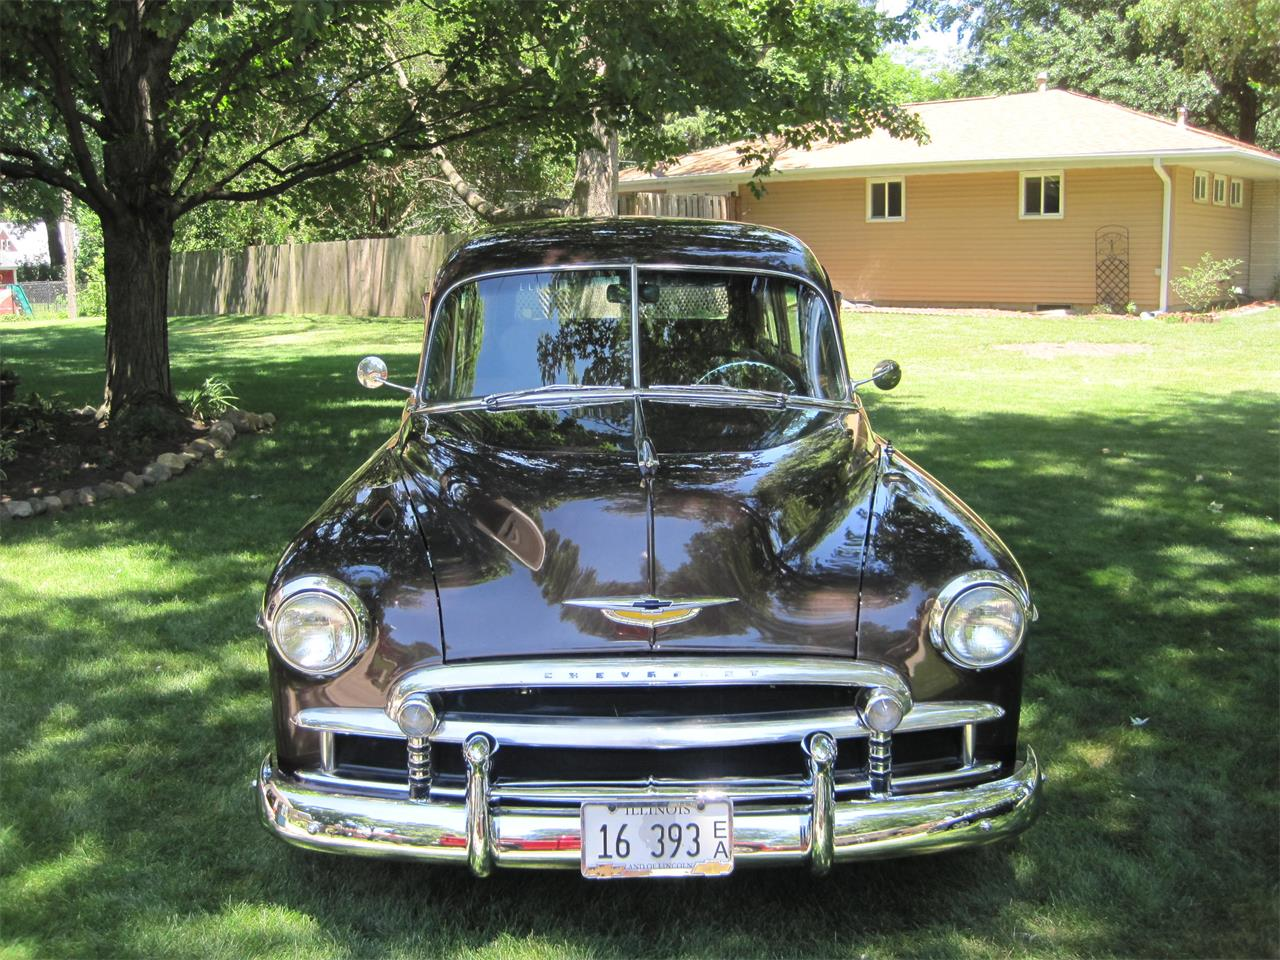 Large Picture of Classic 1950 Chevrolet Station Wagon located in Illinois Offered by a Private Seller - NK20